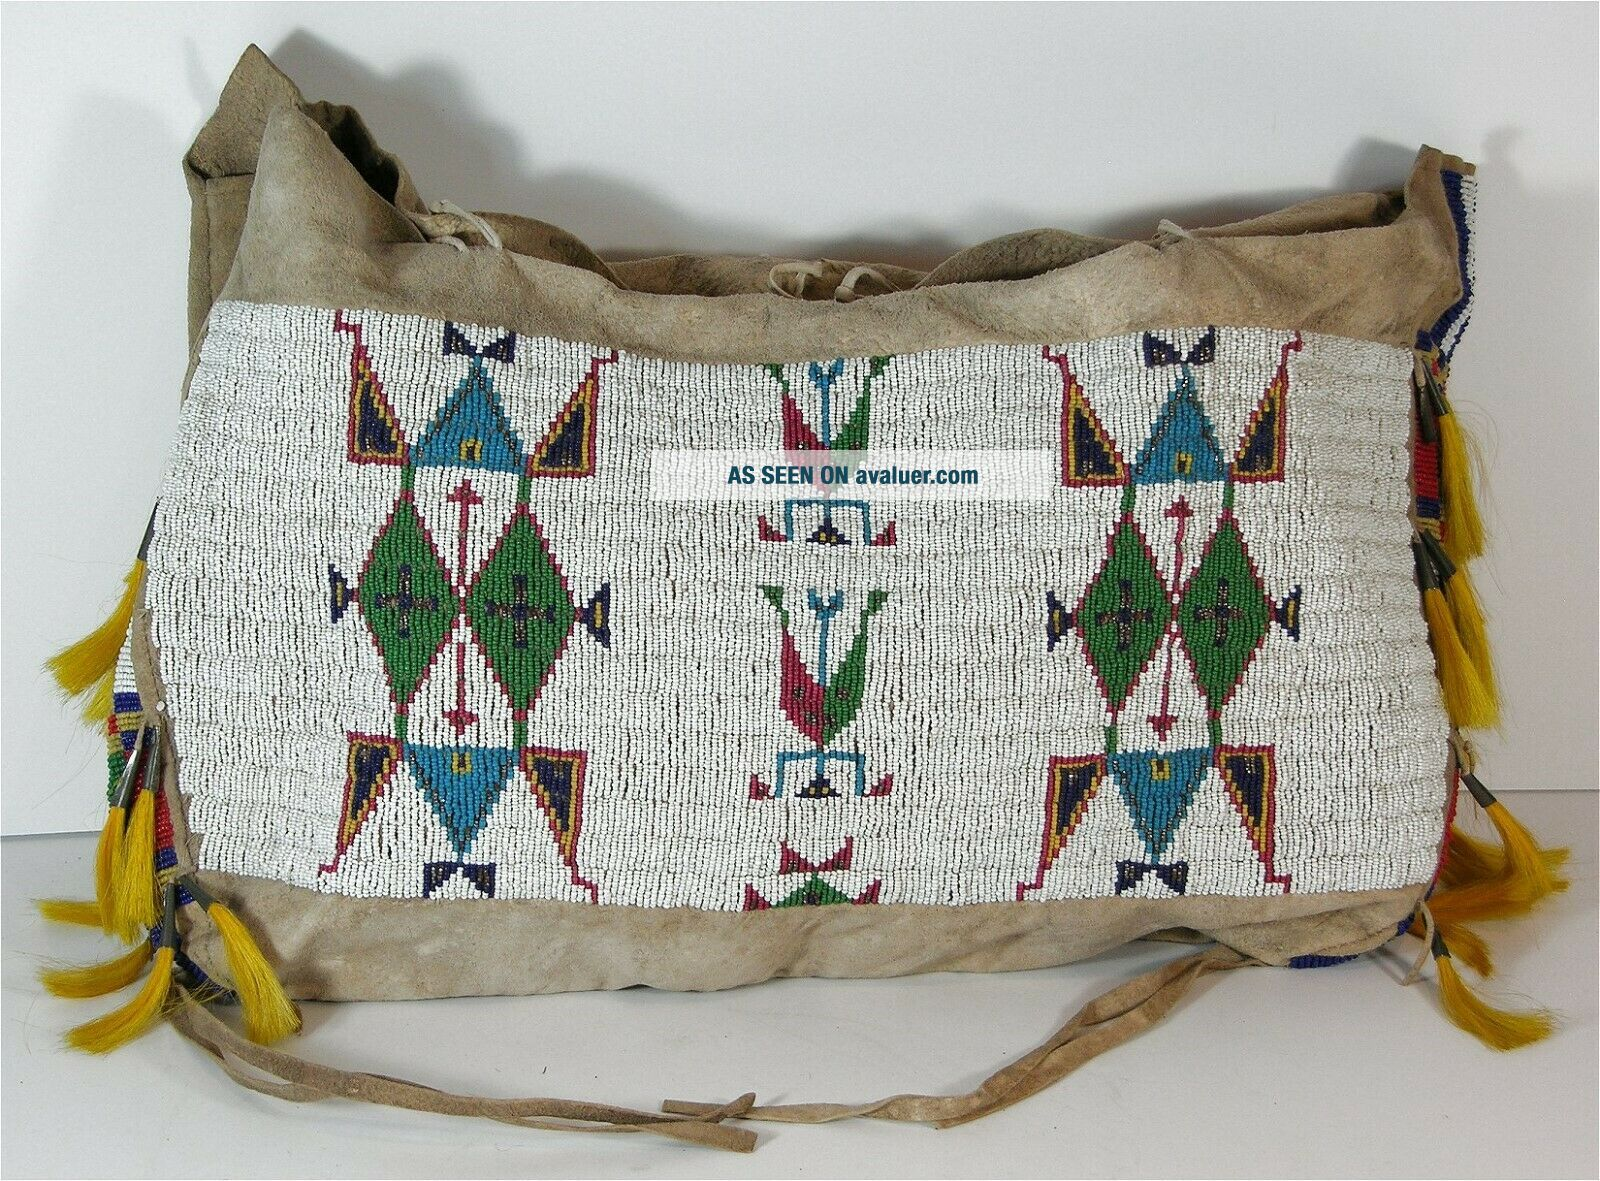 c1890s NATIVE AMERICAN SIOUX INDIAN BEAD DECORATED HIDE TIPEE / TEEPEE BAG LARGE